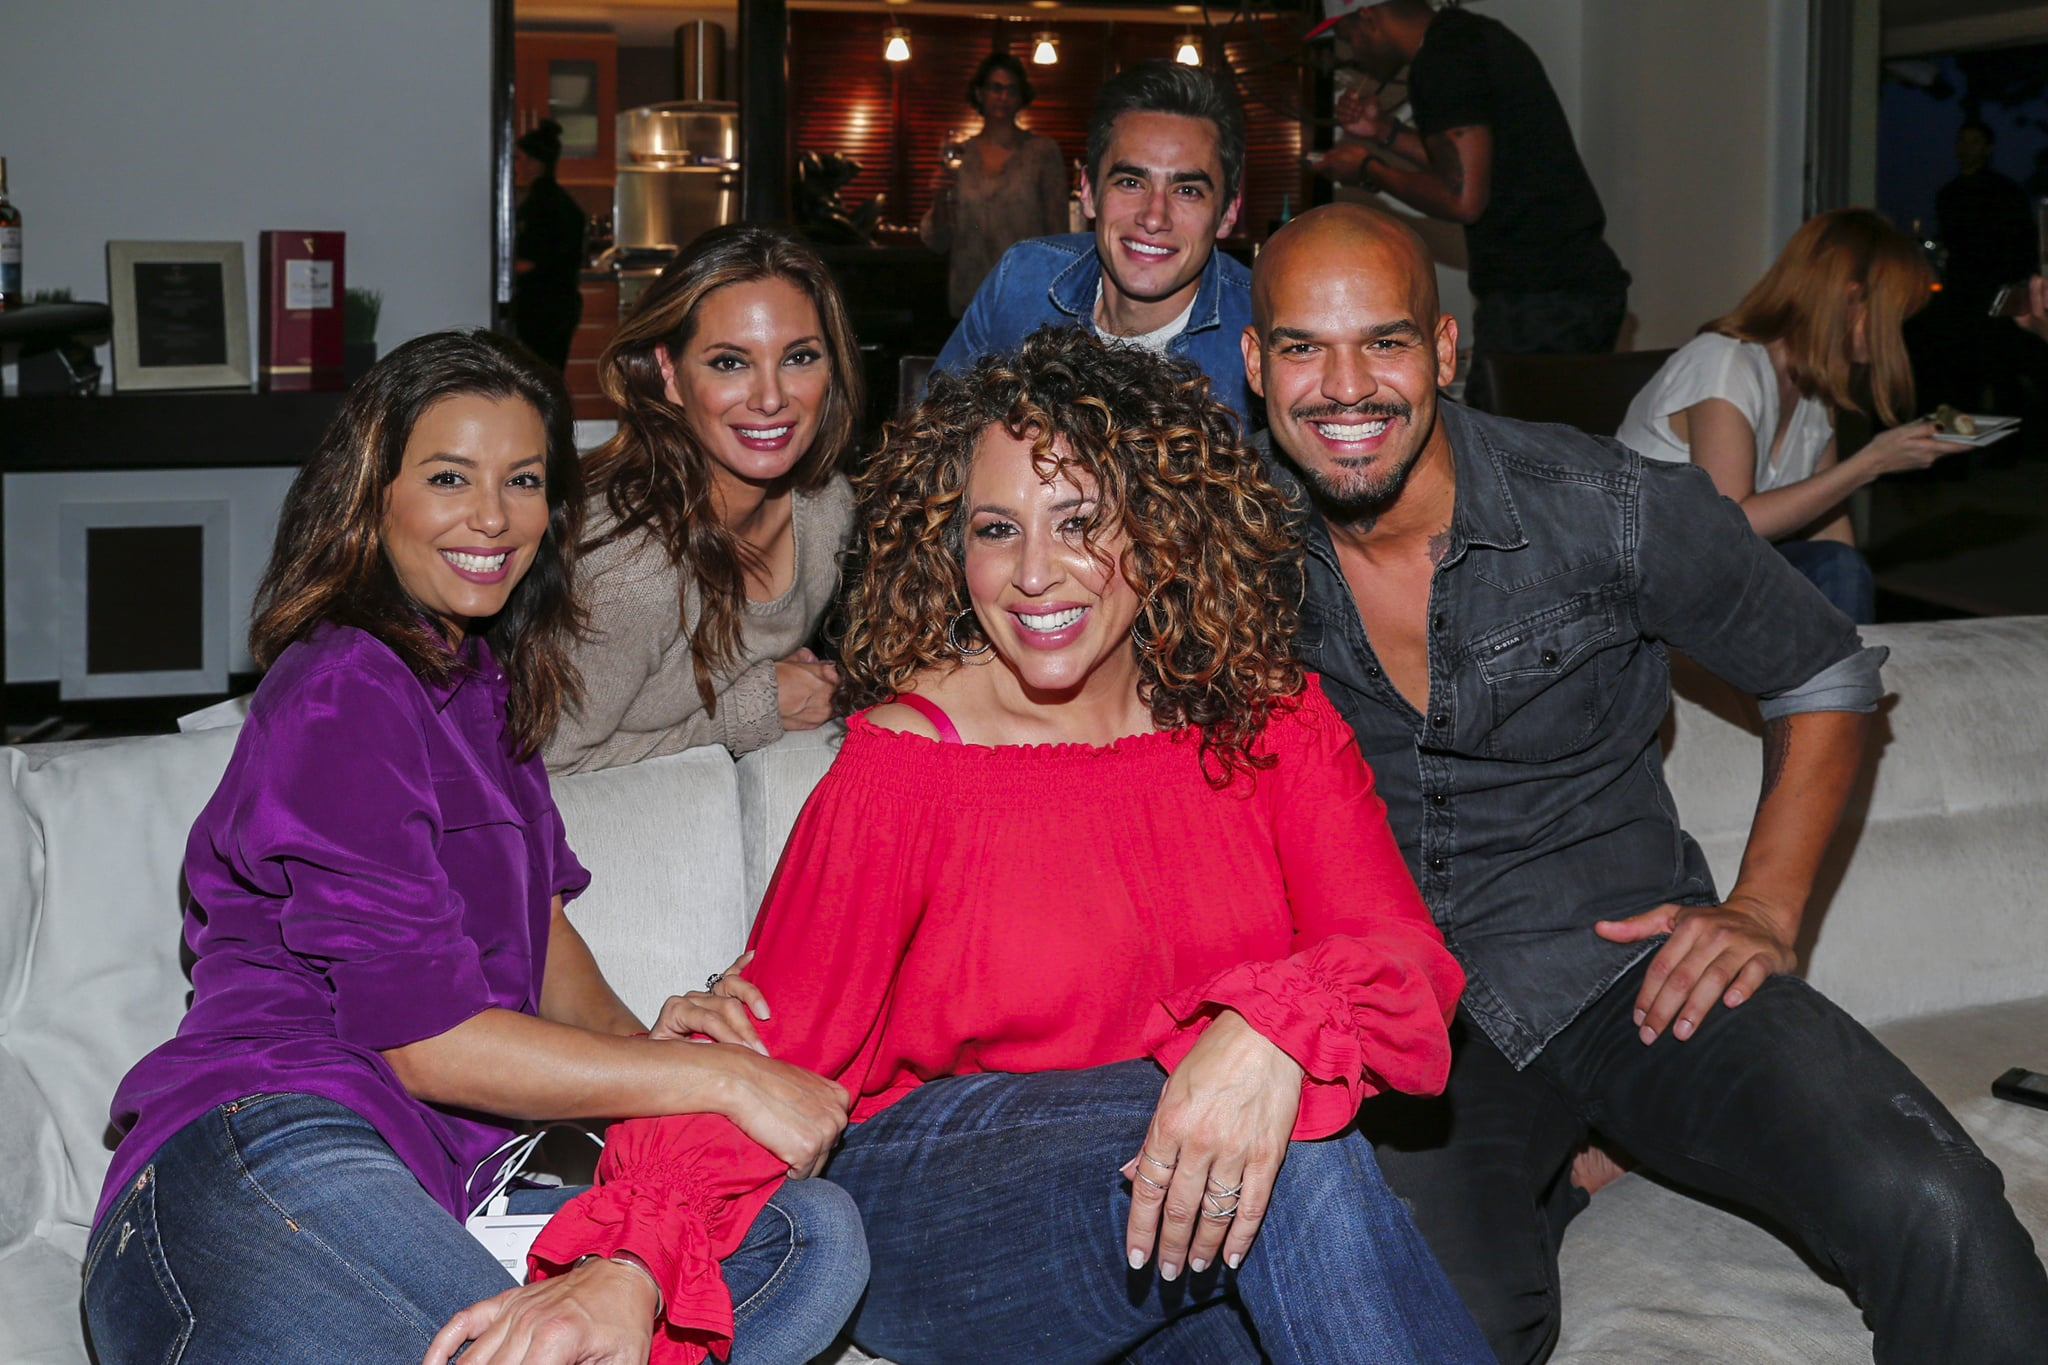 LOS ANGELES, CA - FEBRUARY 22:  Actors, Eva Longoria, Alex Meneses, Jose Moreno Brooks, Diana Maria Riva and Amaury Nolasco attend an event hosted by The Macallan for the cast of NBC's Telenovela to celebrate their Season 1 finale on February 22, 2016 in Los Angeles, California.  (Photo by Rich Polk/Getty Images for The Macallan)